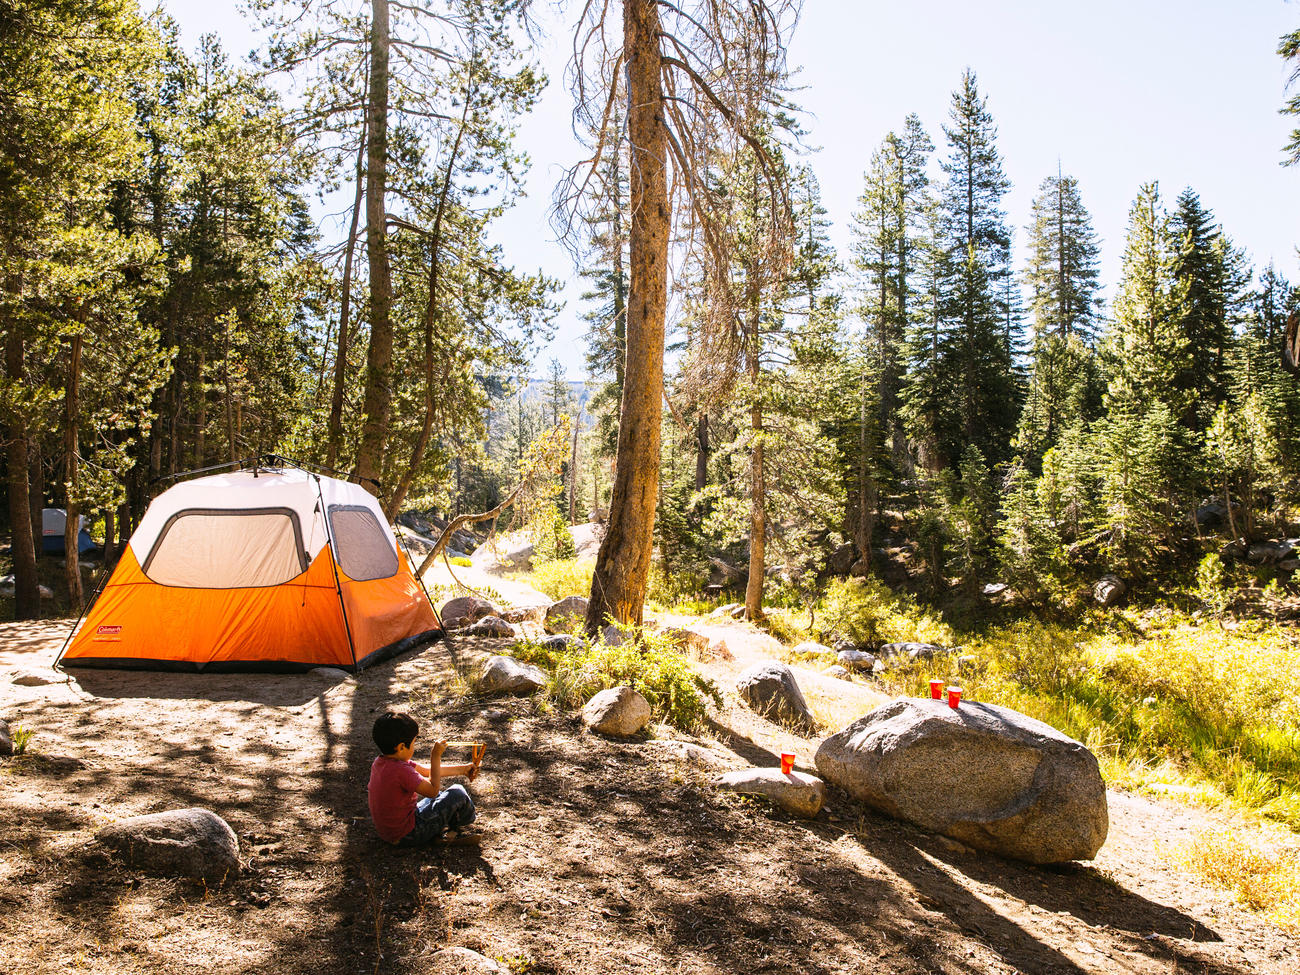 The Most Common Camping Mistakes & Advice for Avoiding Them - Sunset  Magazine